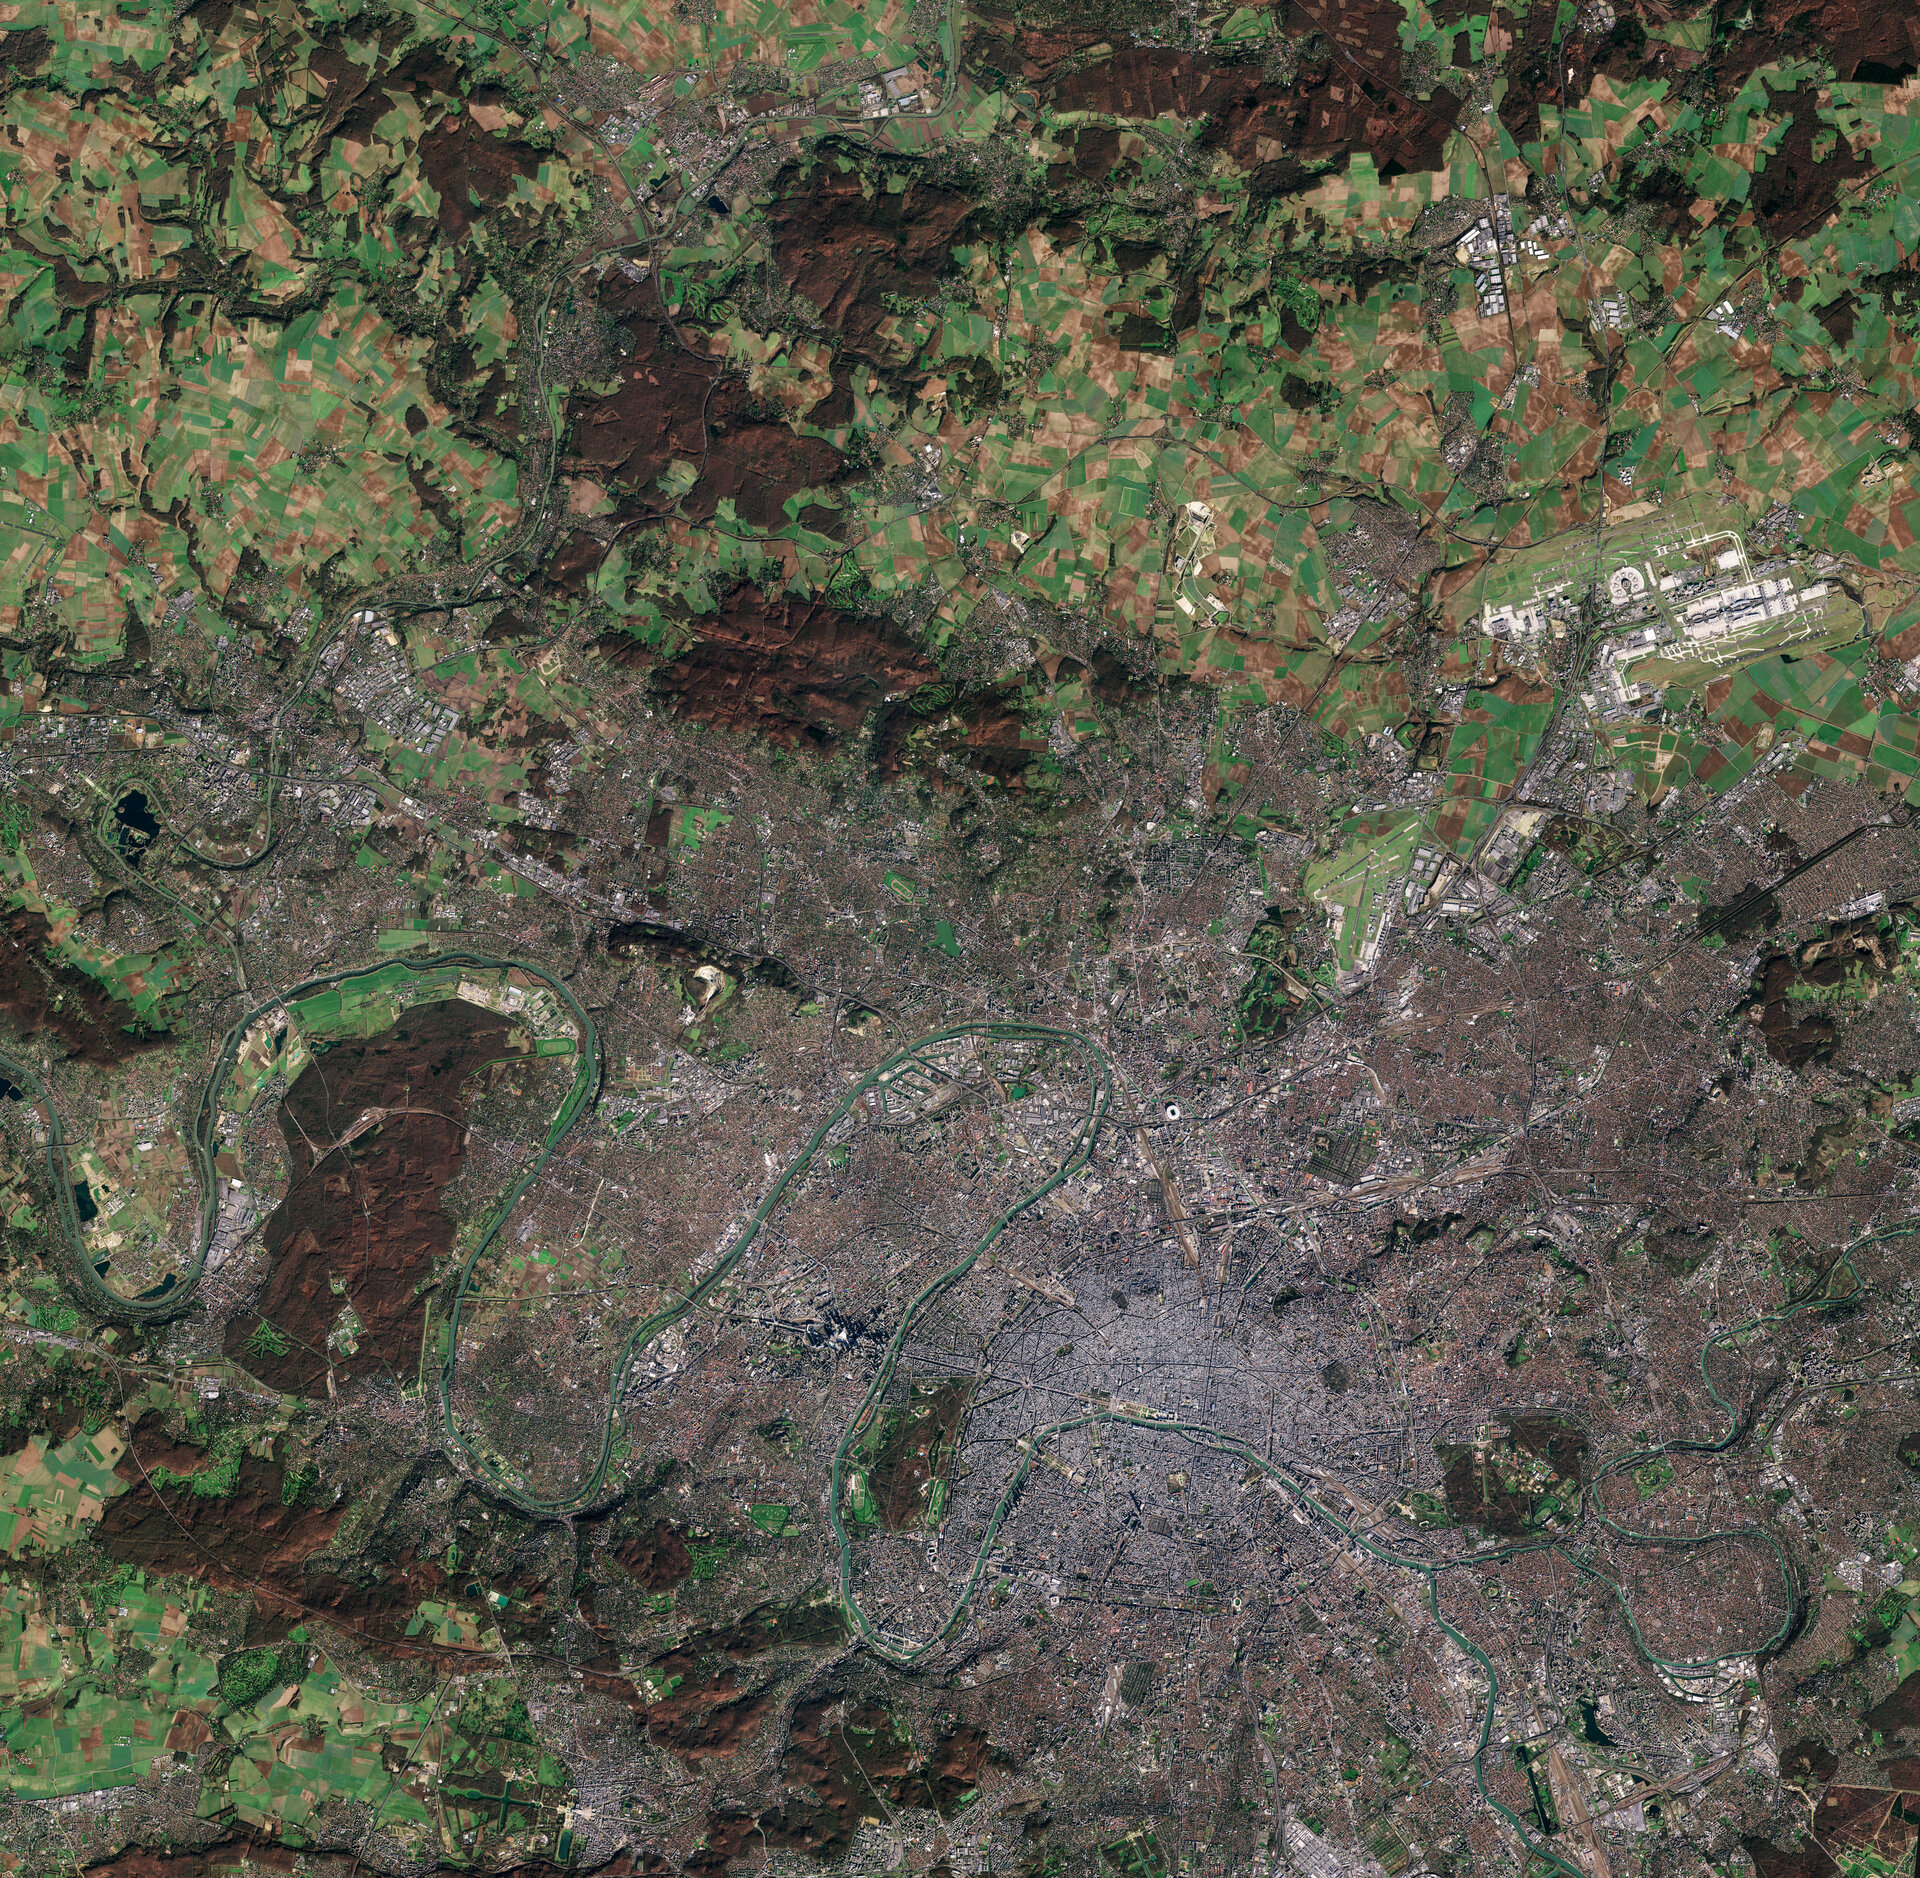 Image of Paris captured by Sentinel-2A